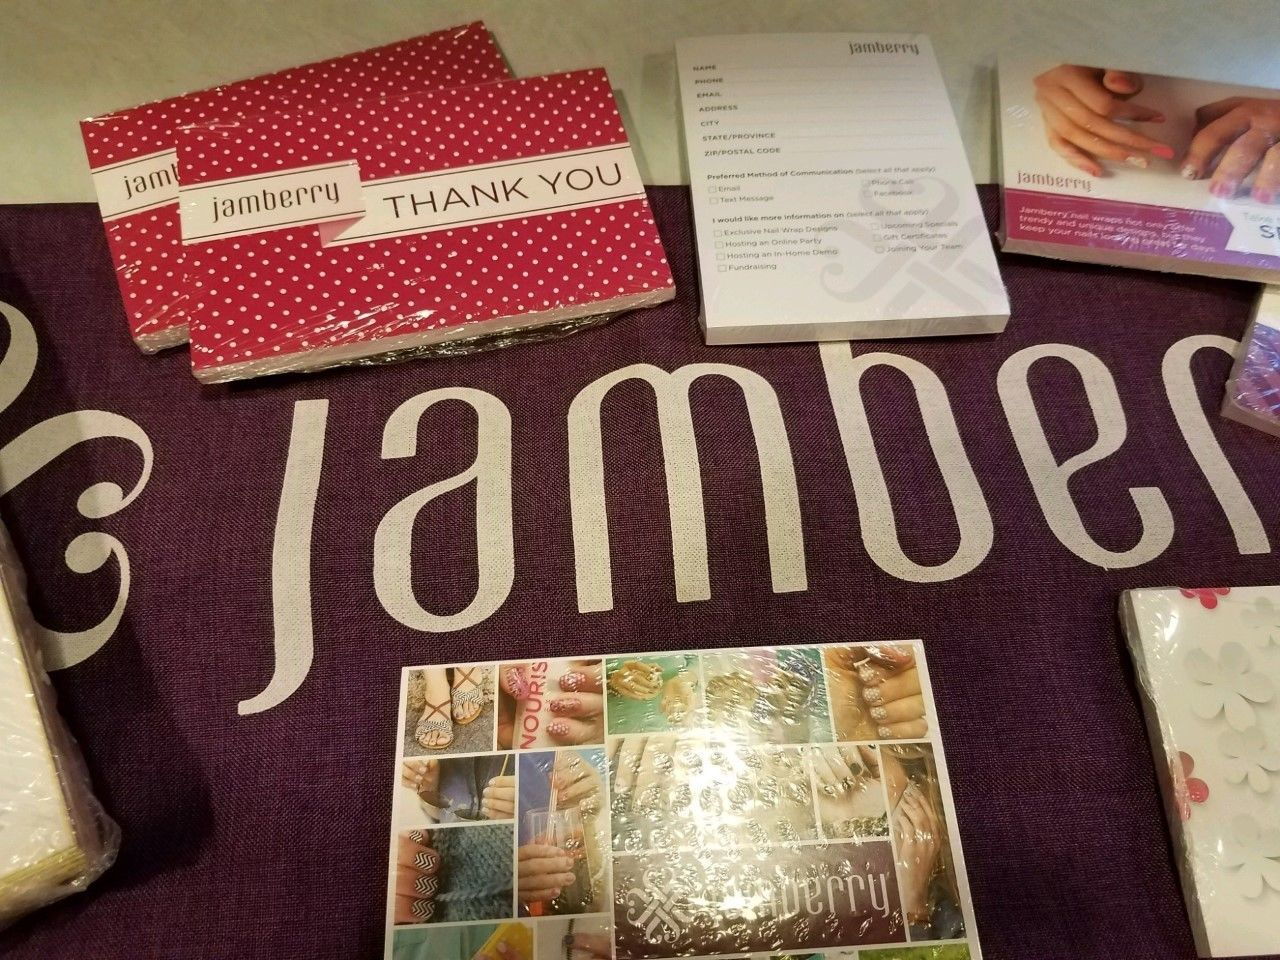 Lot of New Jamberry Consultant Business Supplies with Jamberry Table Runner image 8